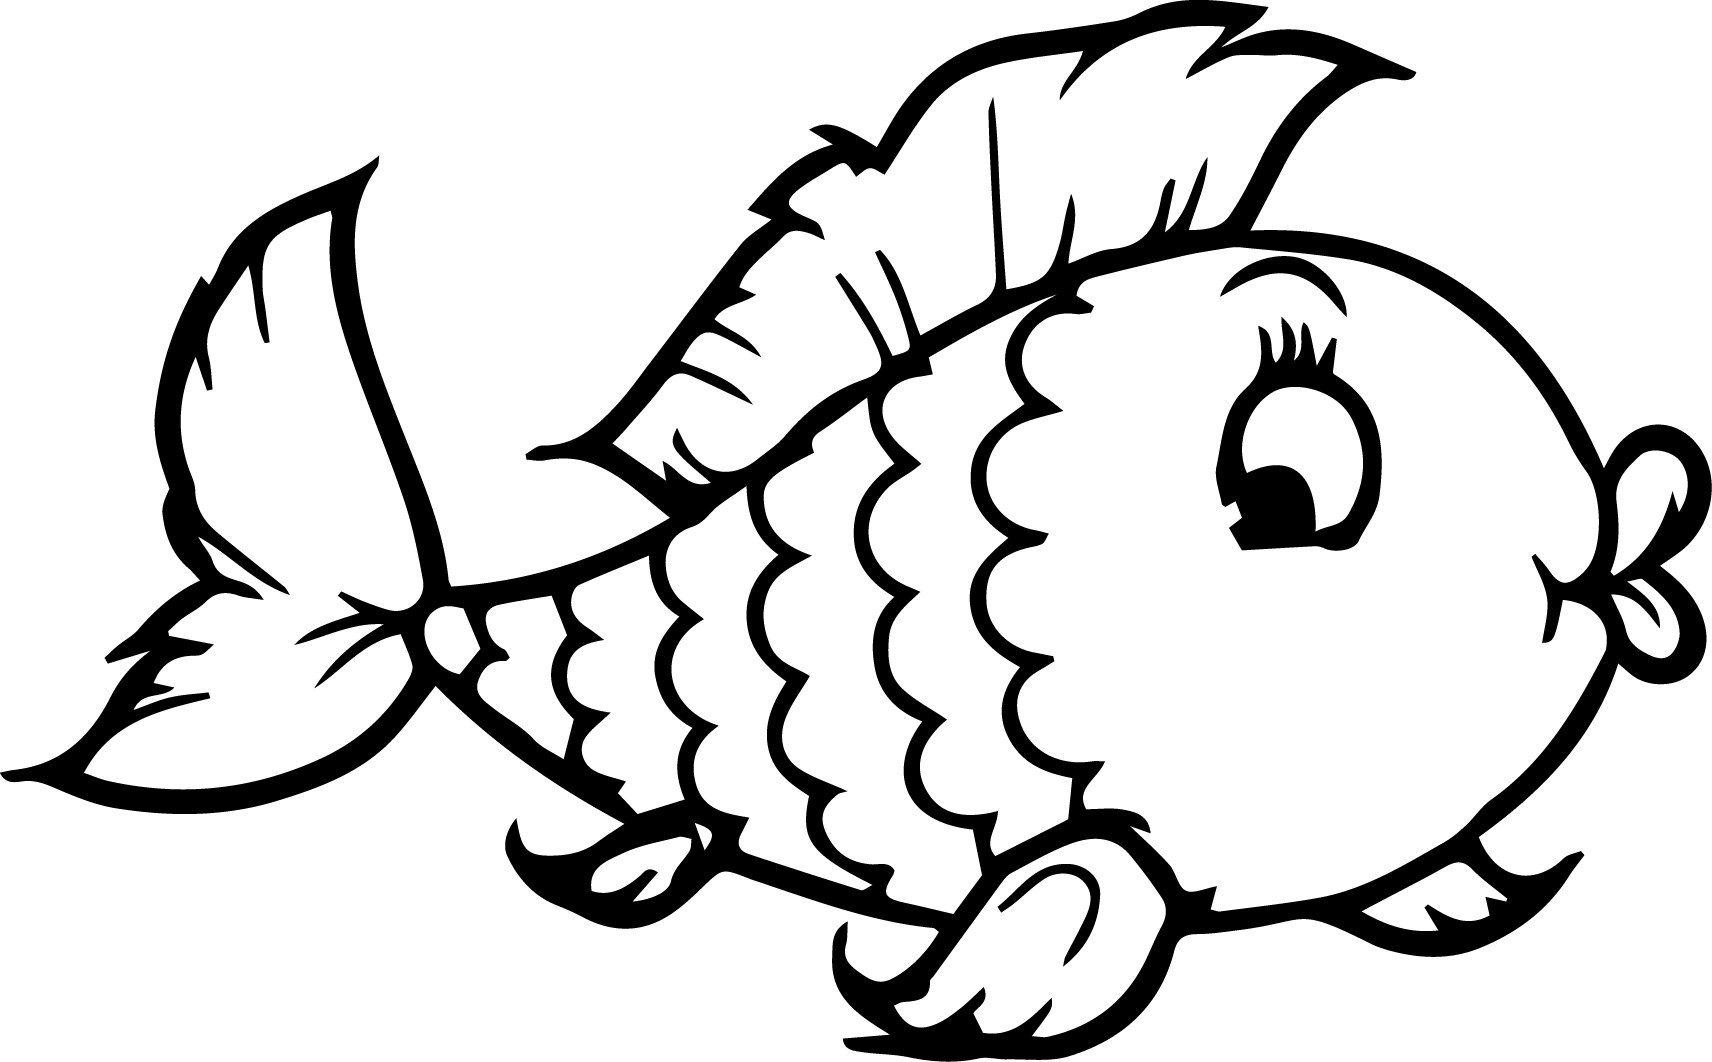 printable fish fish coloring pages for kids preschool and kindergarten fish printable